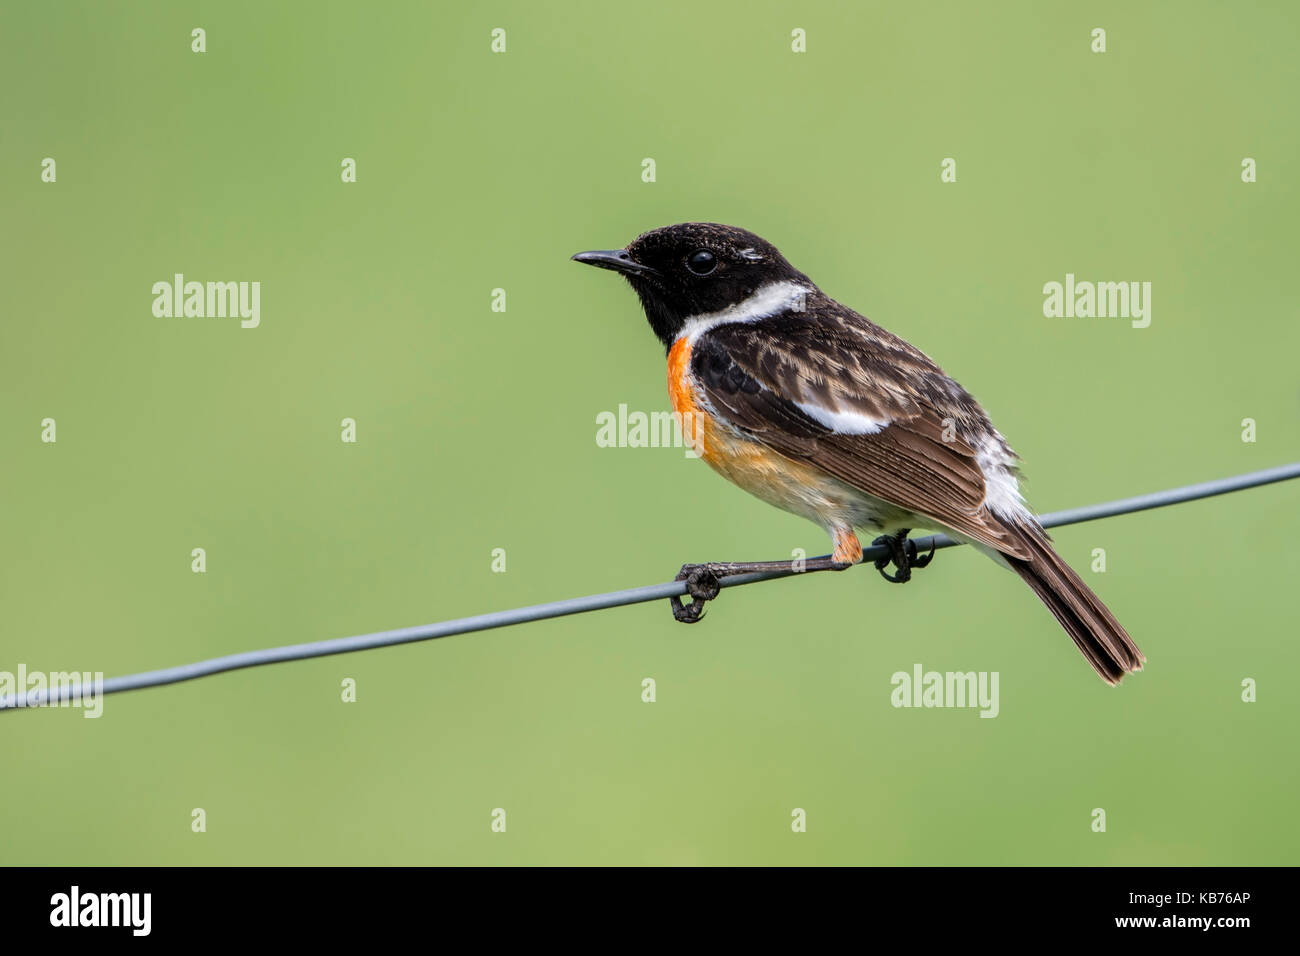 European Stonechat (Saxicola rubicola) on a wire, The Netherlands, Gelderland, Elburg - Stock Image